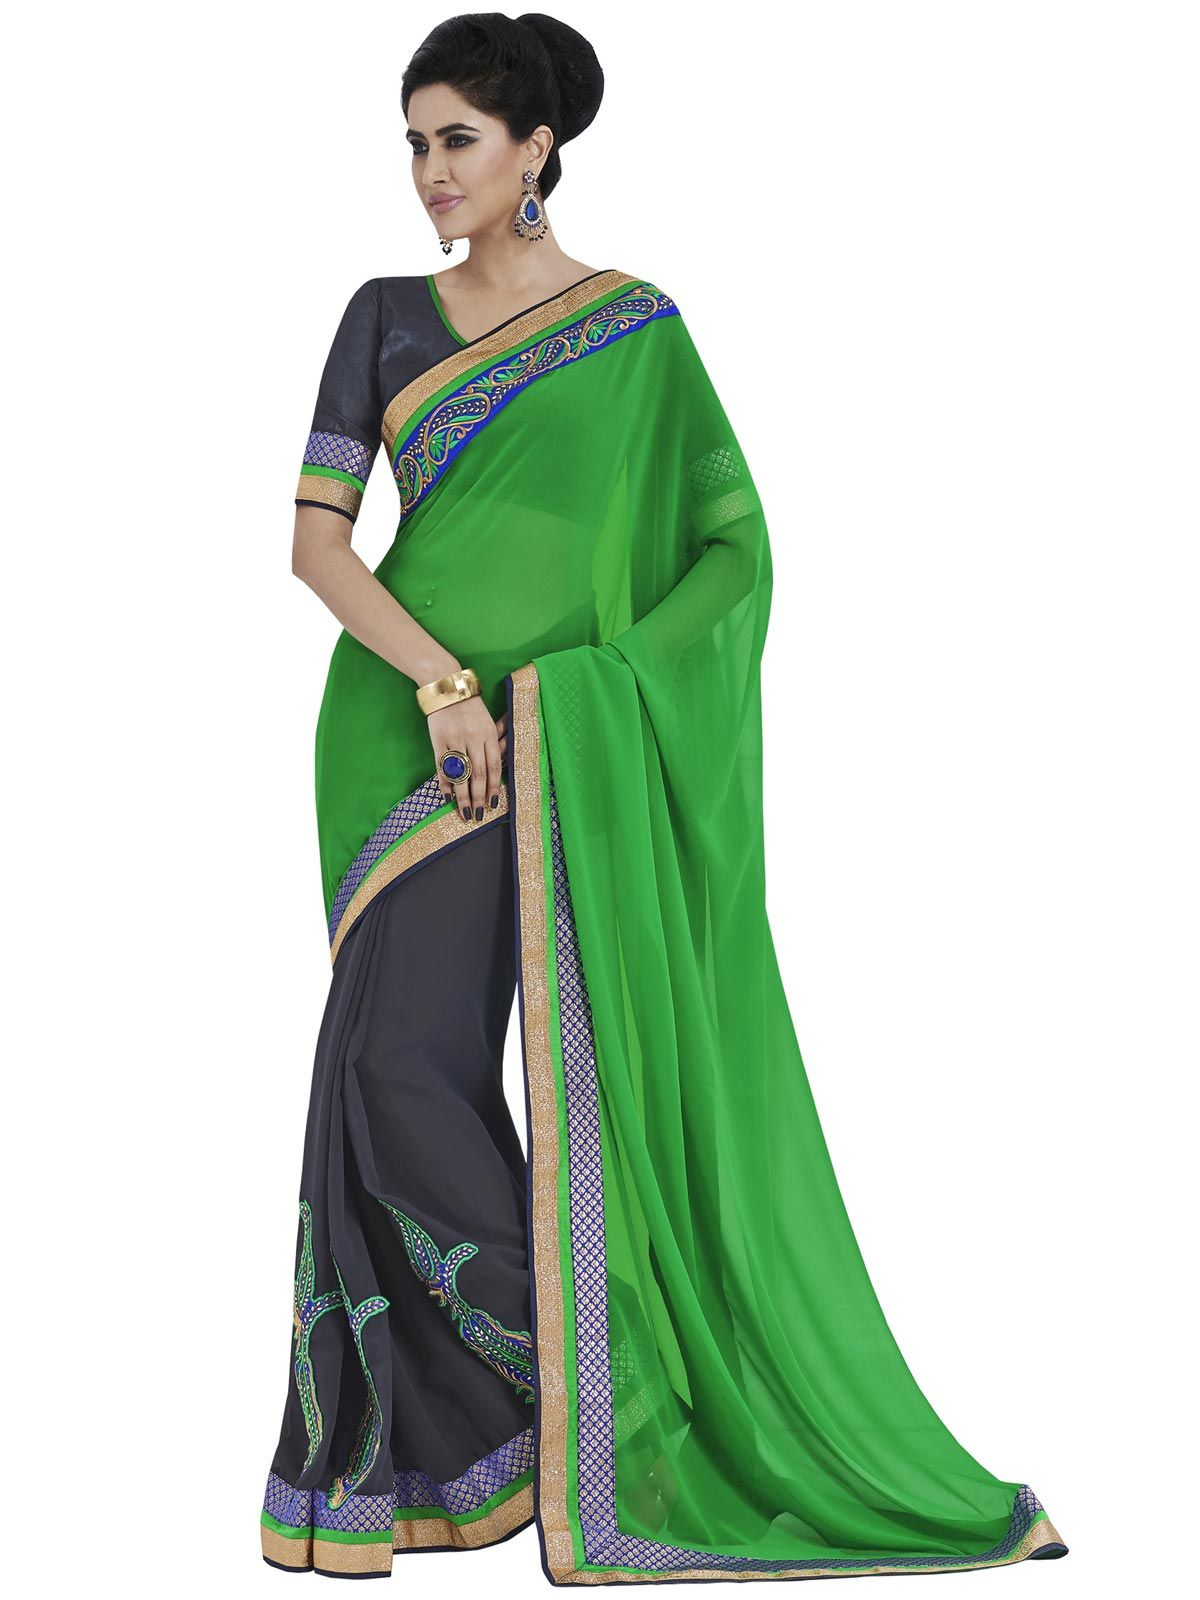 #Stunning Green!!!  #Stunning Green Georgette Saree design with Embroidery.Grey Raw Silk Blouse Comes as an Unstitched Material.  INR 1400.00 Only  Shop@ http://goo.gl/2btunG